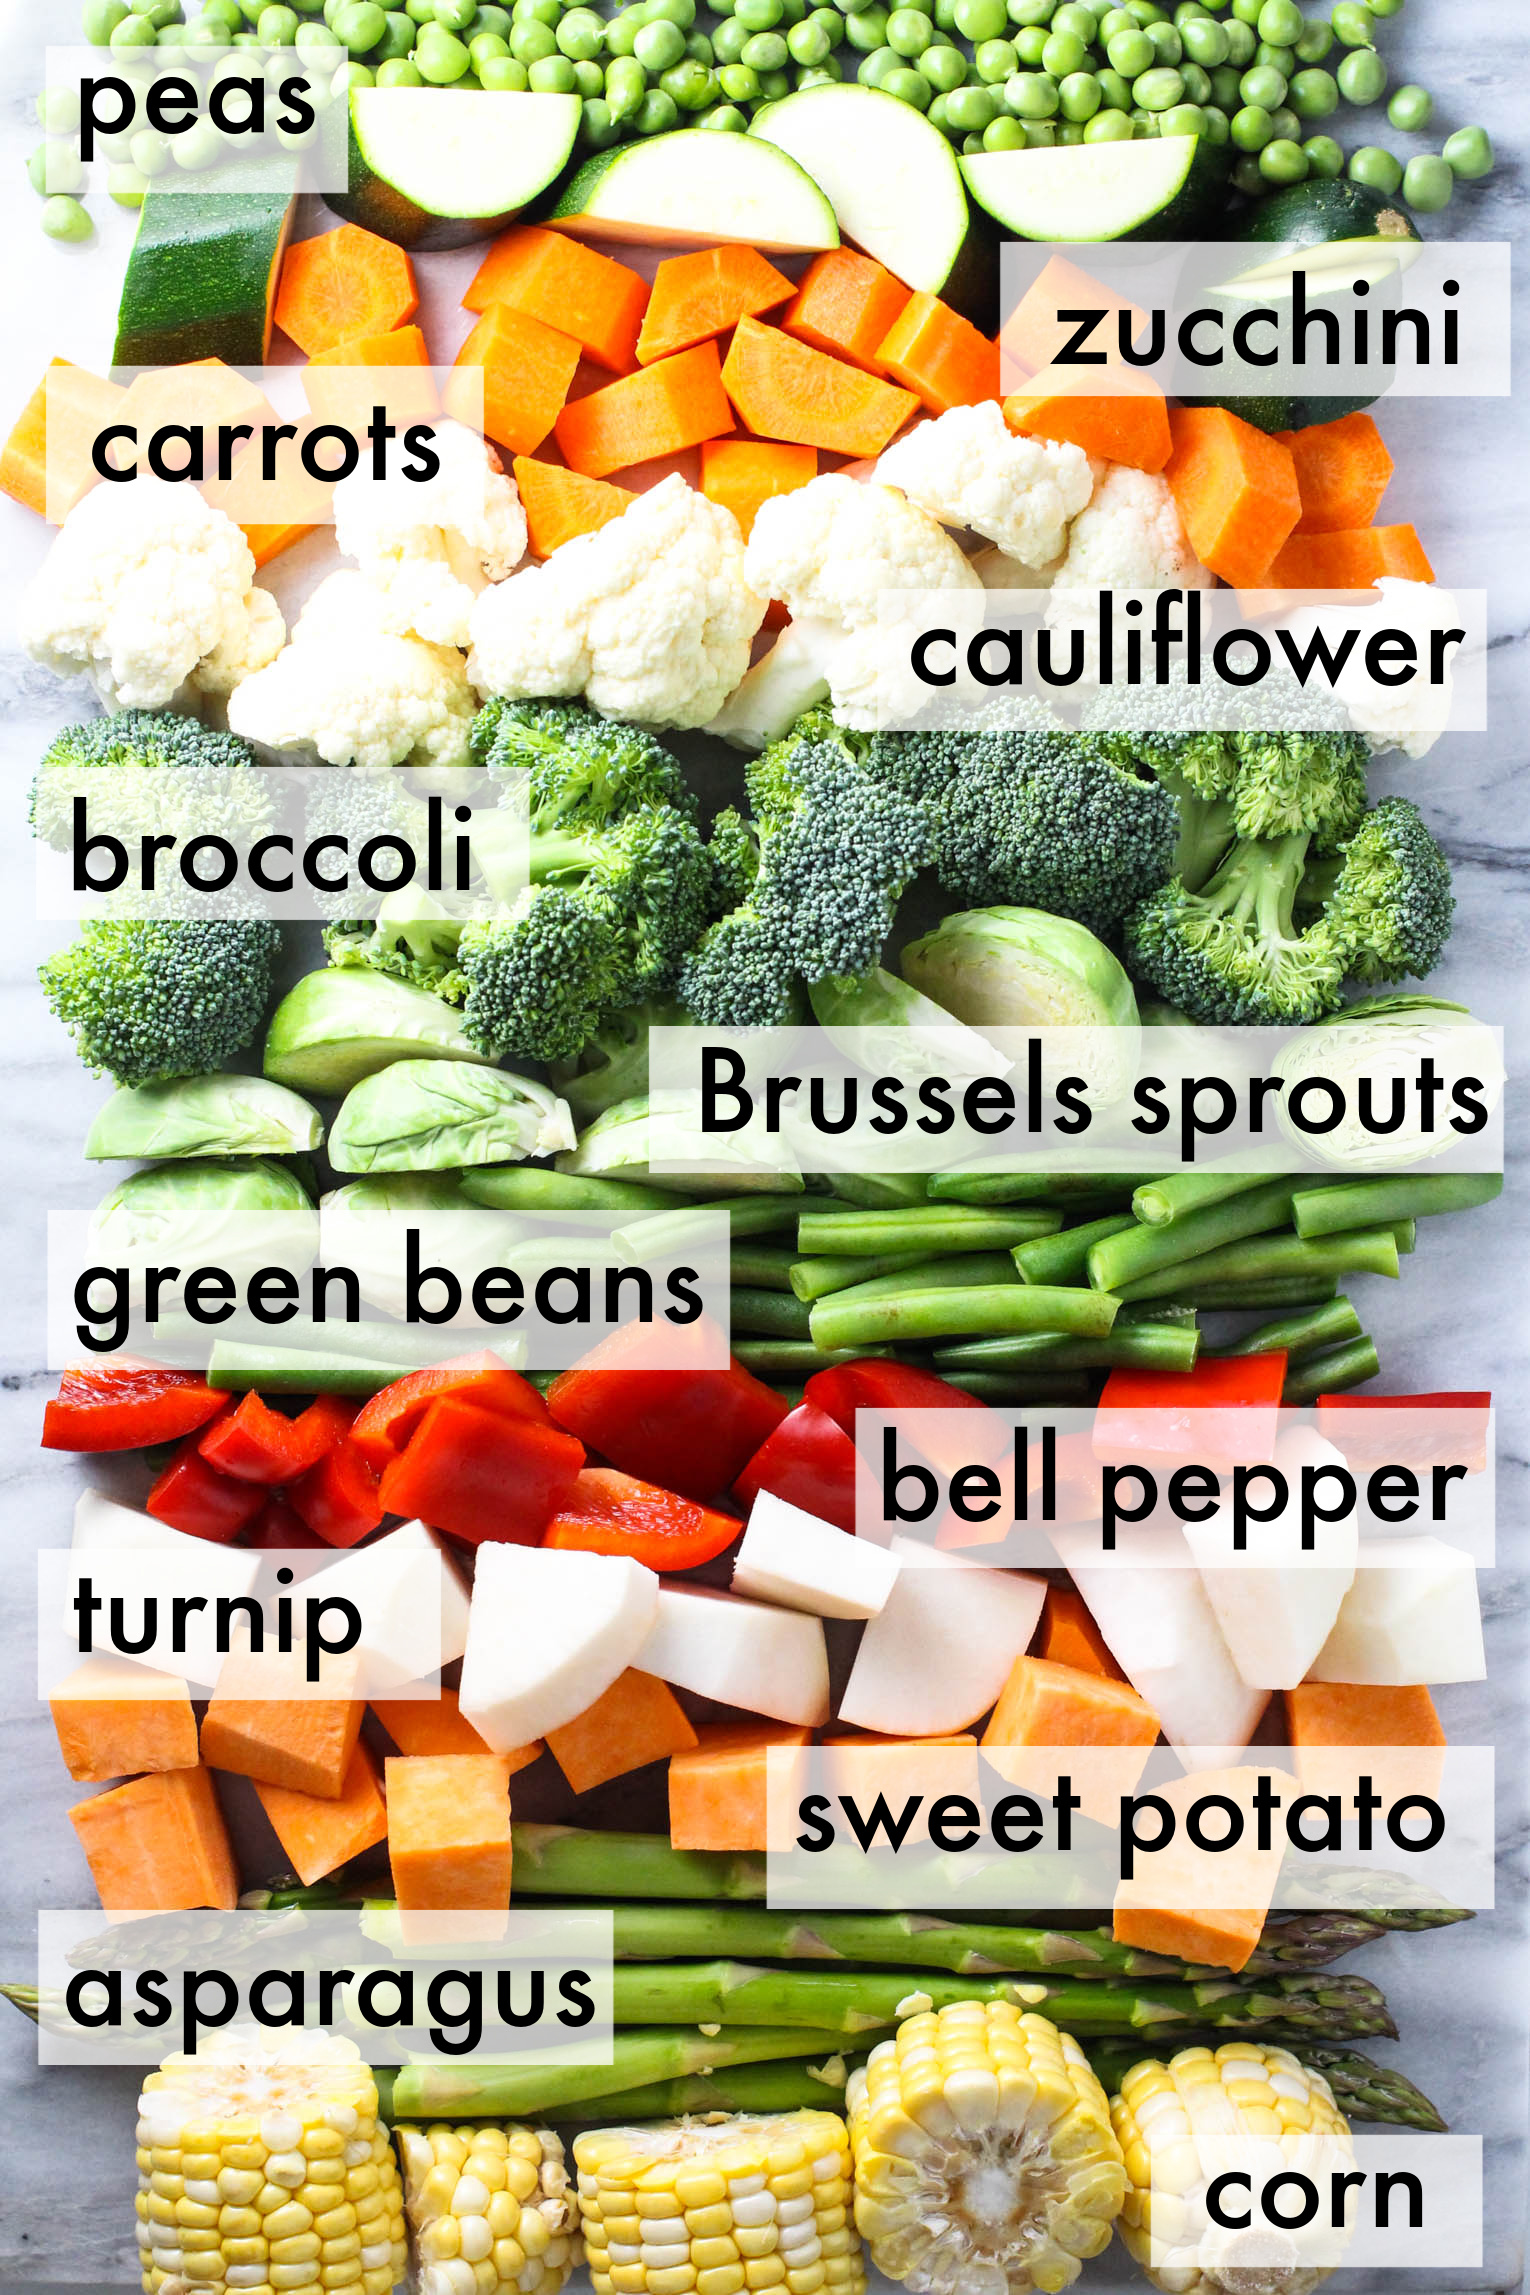 Fresh sliced vegetables arranged in layers over marble background. The vegetables are labeled as follows: peas, zucchini, carrots, cauliflower, broccoli, Brussels sprouts, green beans, bell pepper, turnip, sweet potato, asparagus, corn.